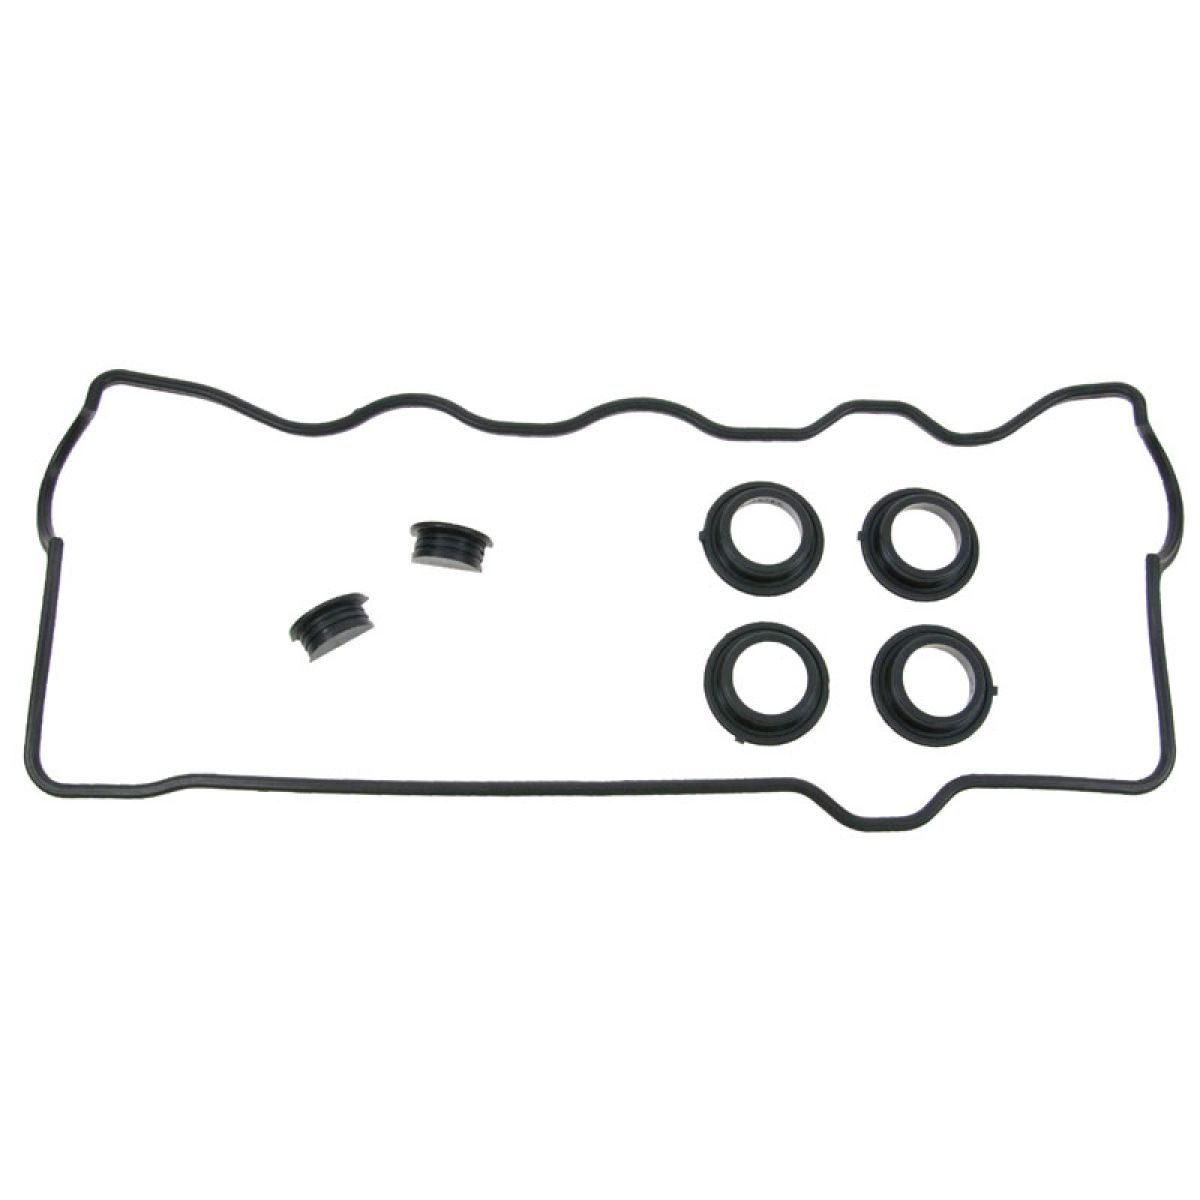 Valve Cover Gasket Set W Seals For Toyota Camry Celica